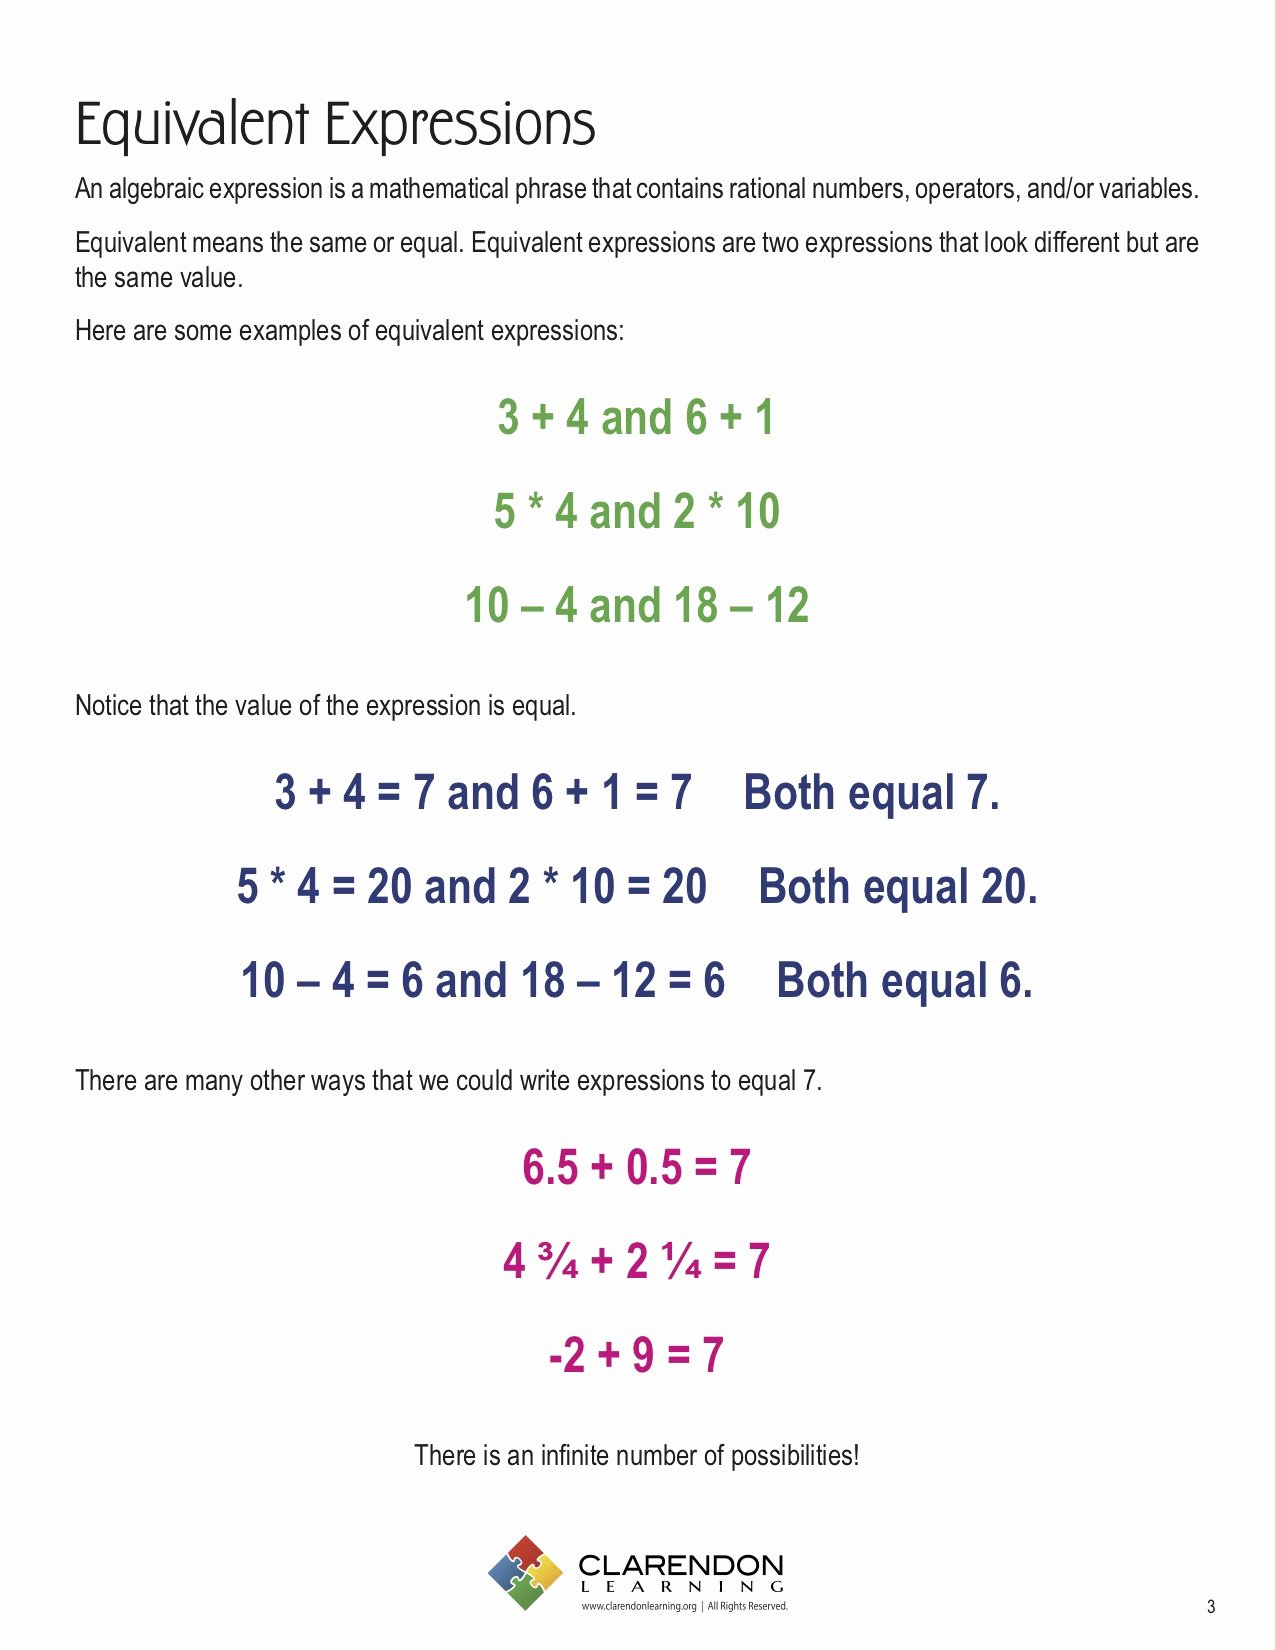 Equivalent Expressions Worksheet 7th Grade Lovely Identify Equivalent Expressions Worksheet